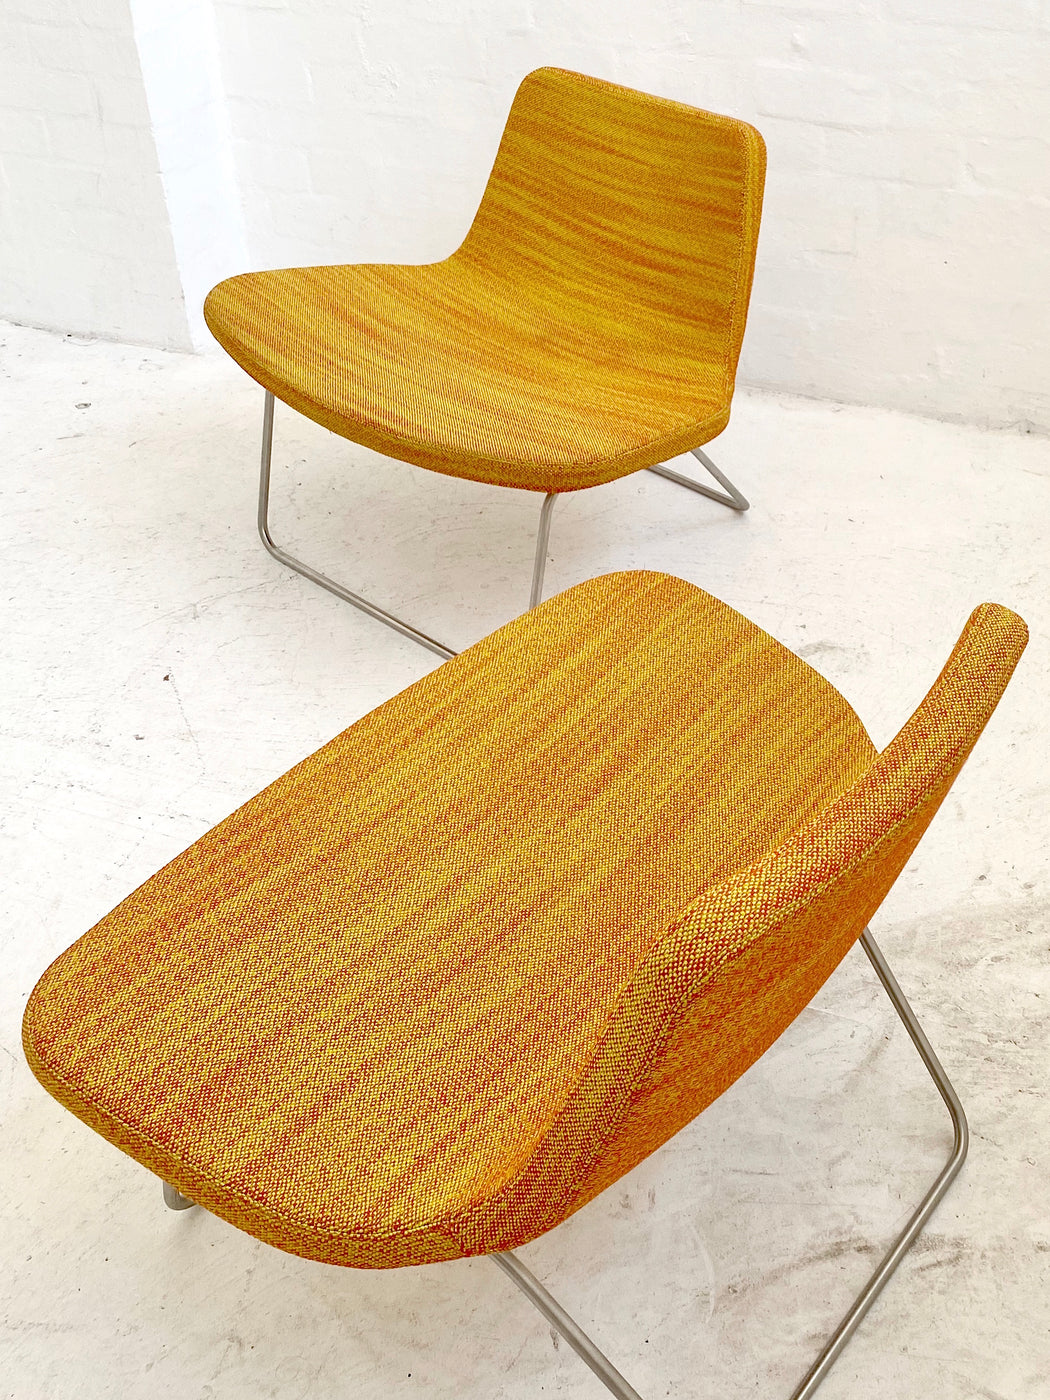 Jakob Wagner 'Ray' Lounge Chair